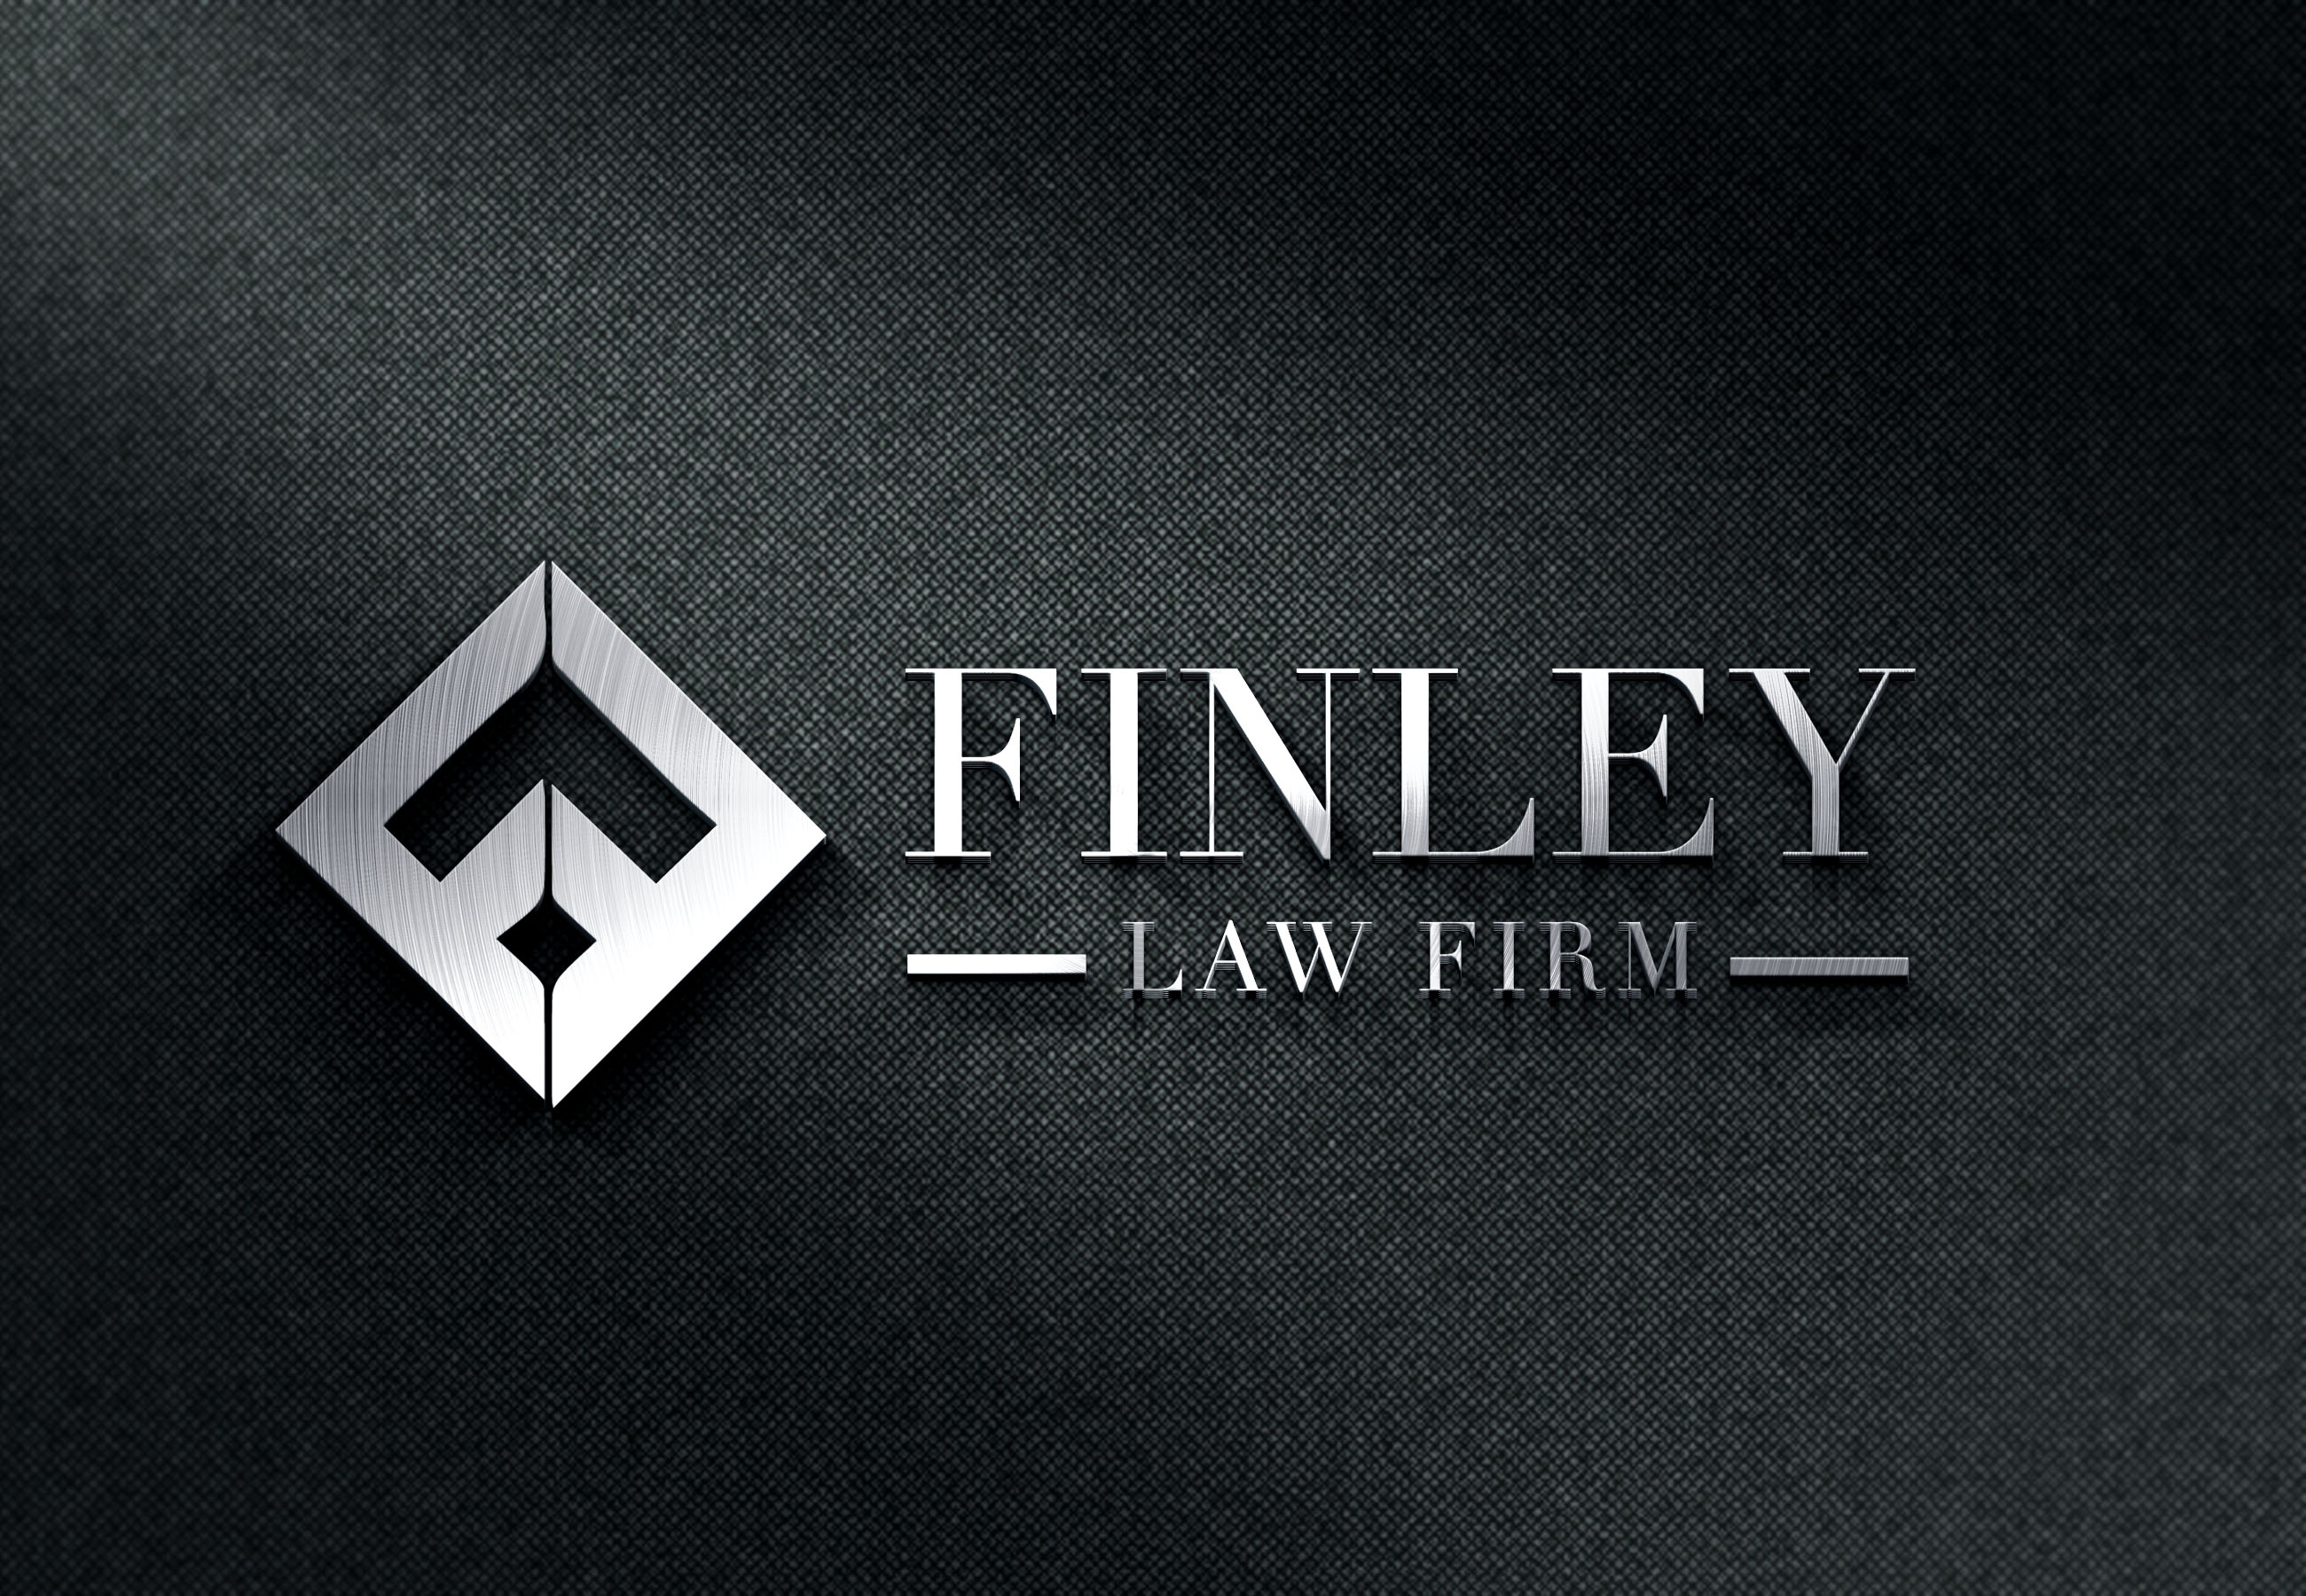 Finley Law Firm